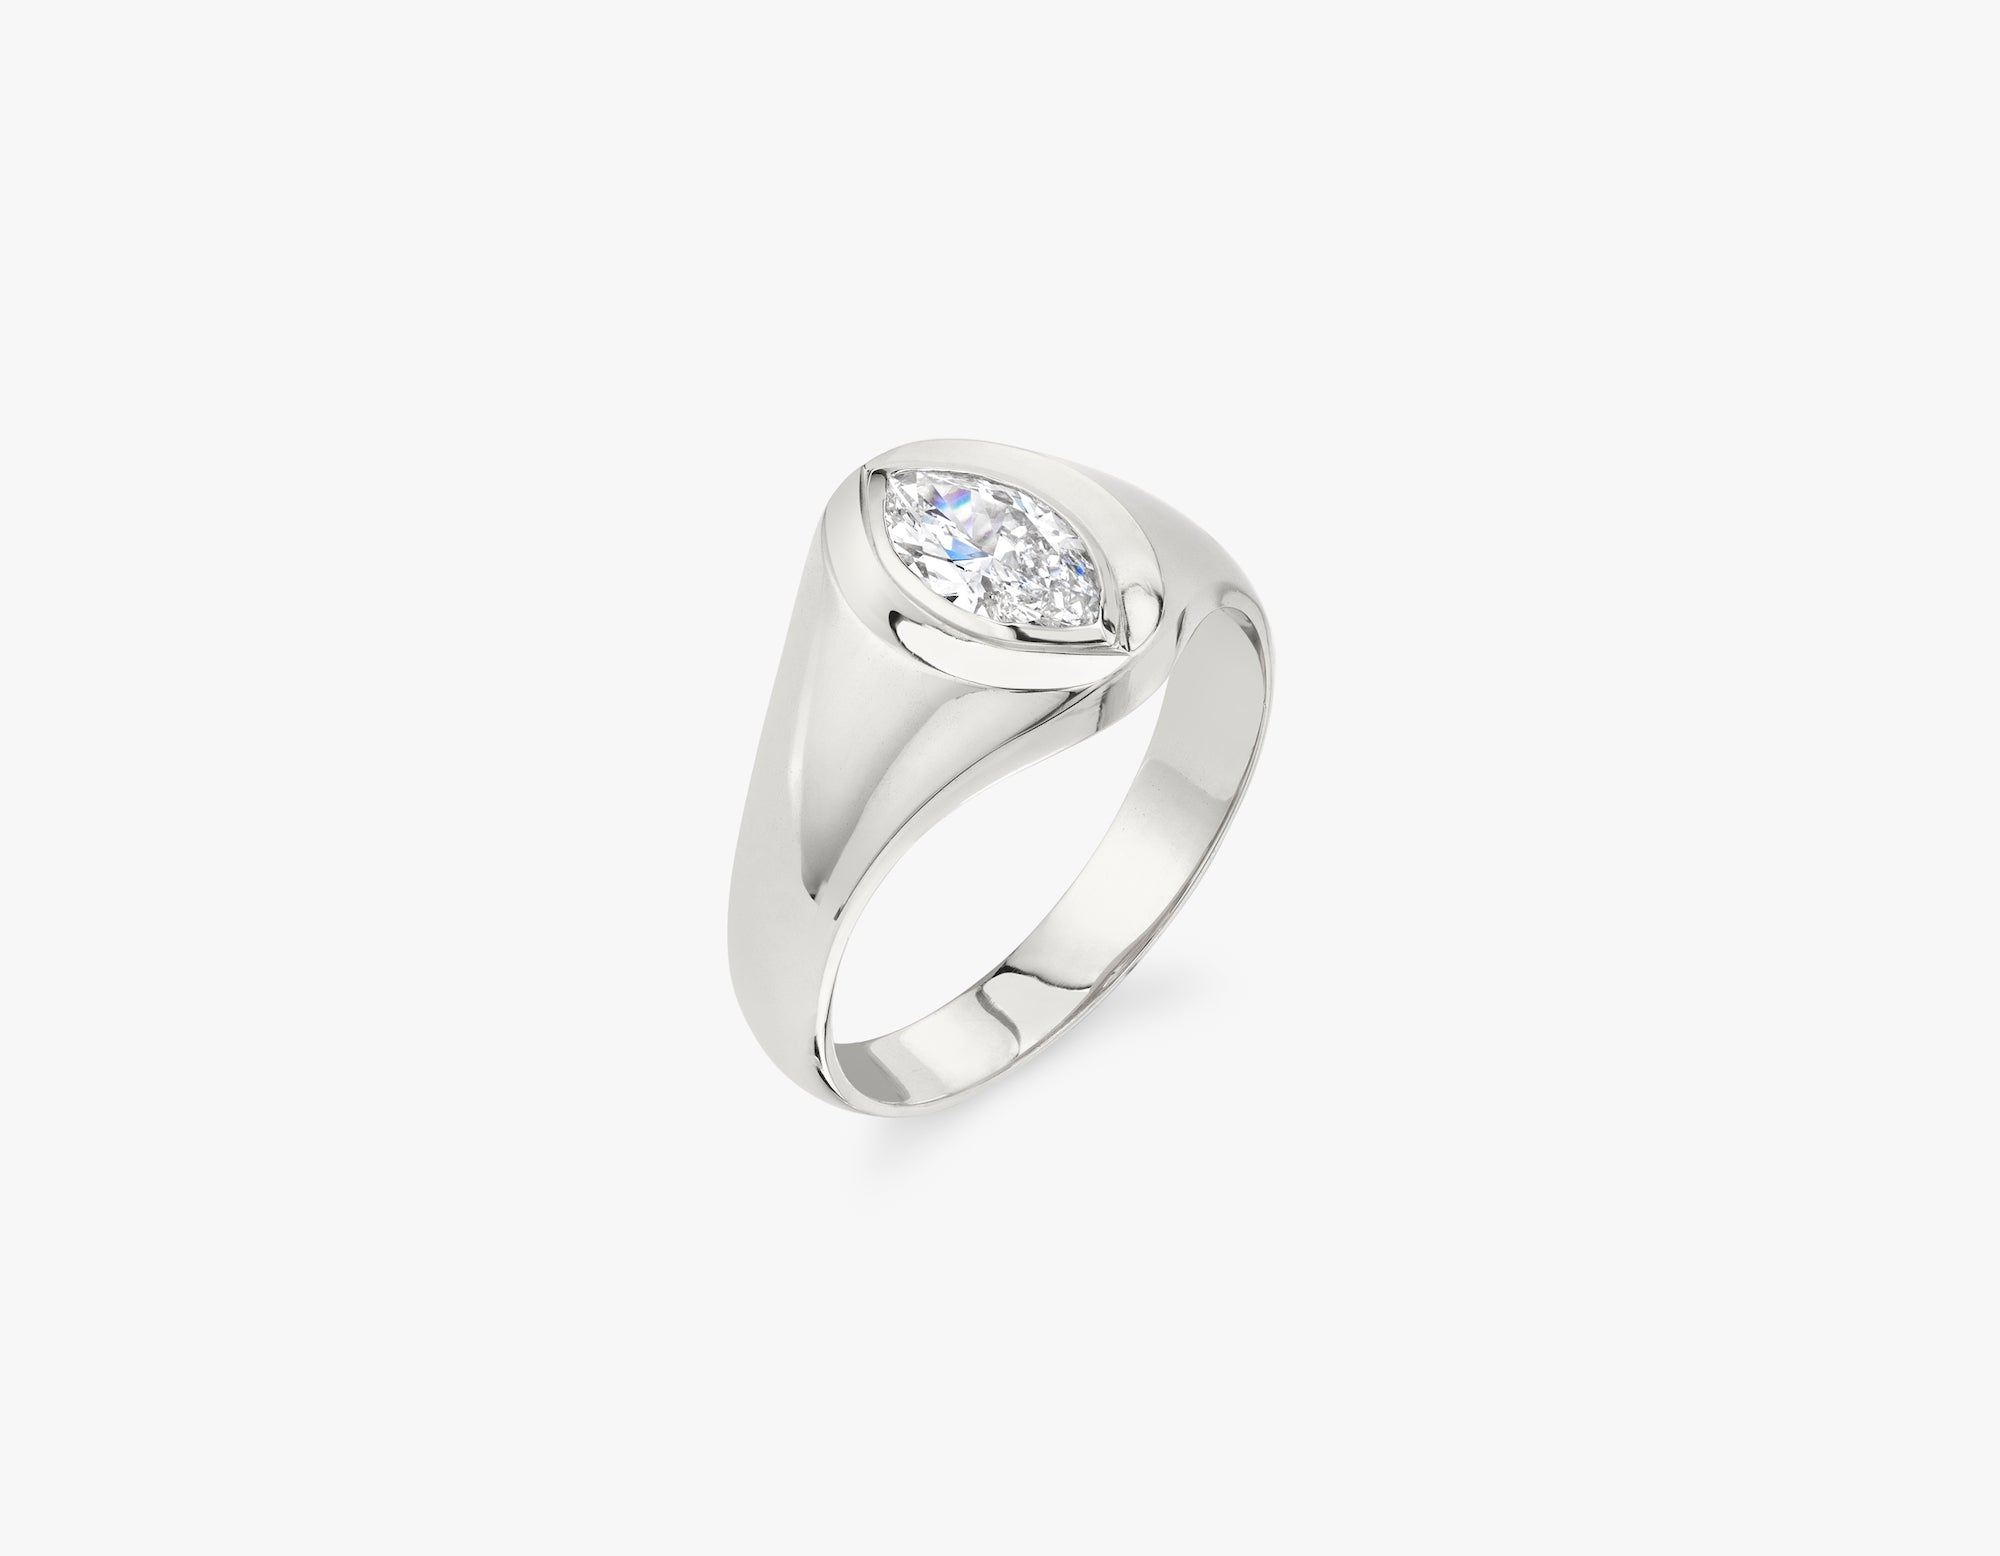 Vrai 14k solid gold classic minimalist Marquise Diamond Signet Ring, 14K White Gold